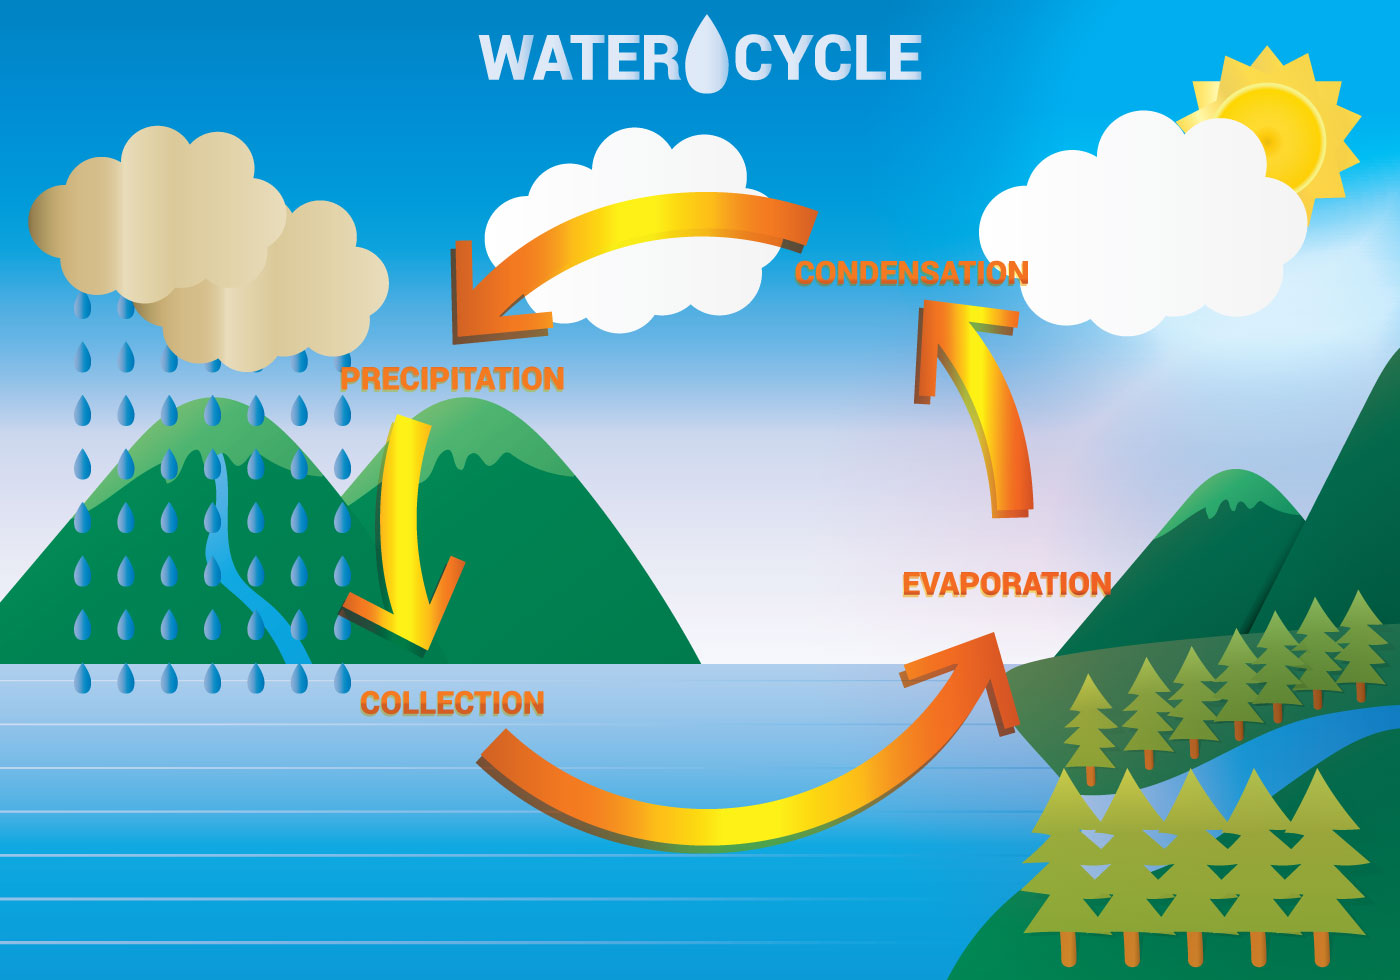 Water Cycle Free Vector Art